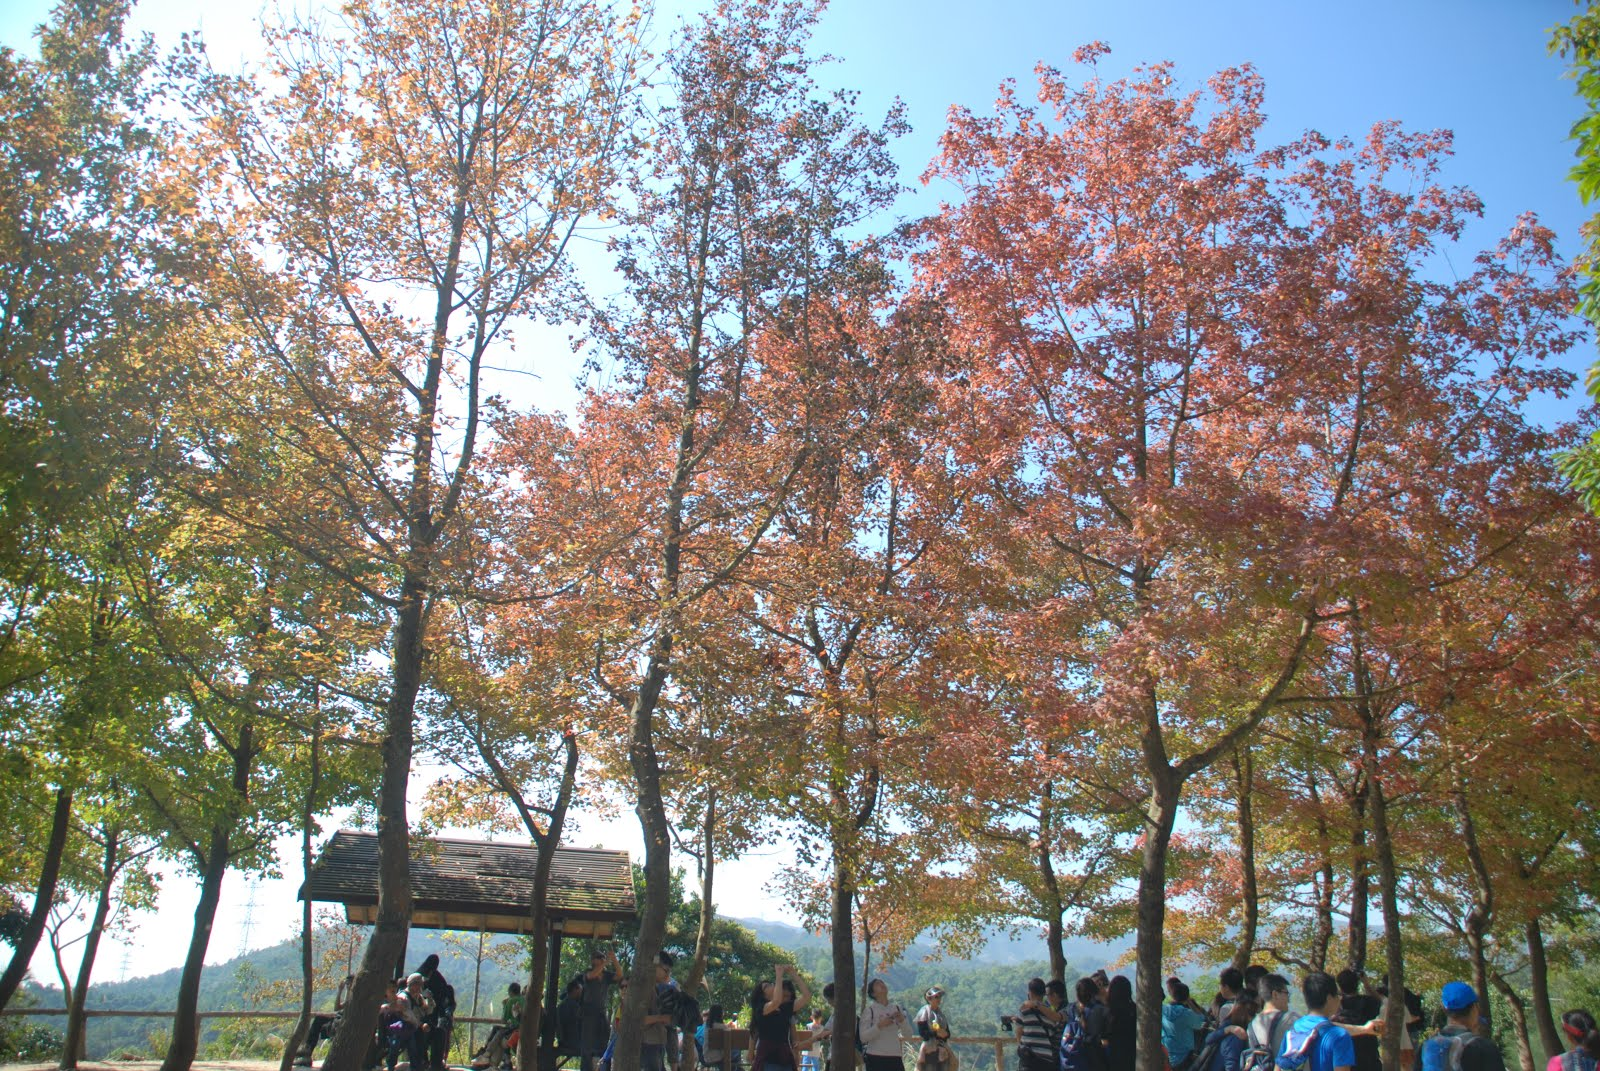 Autumn Leaves @Tai Tong 大棠紅葉